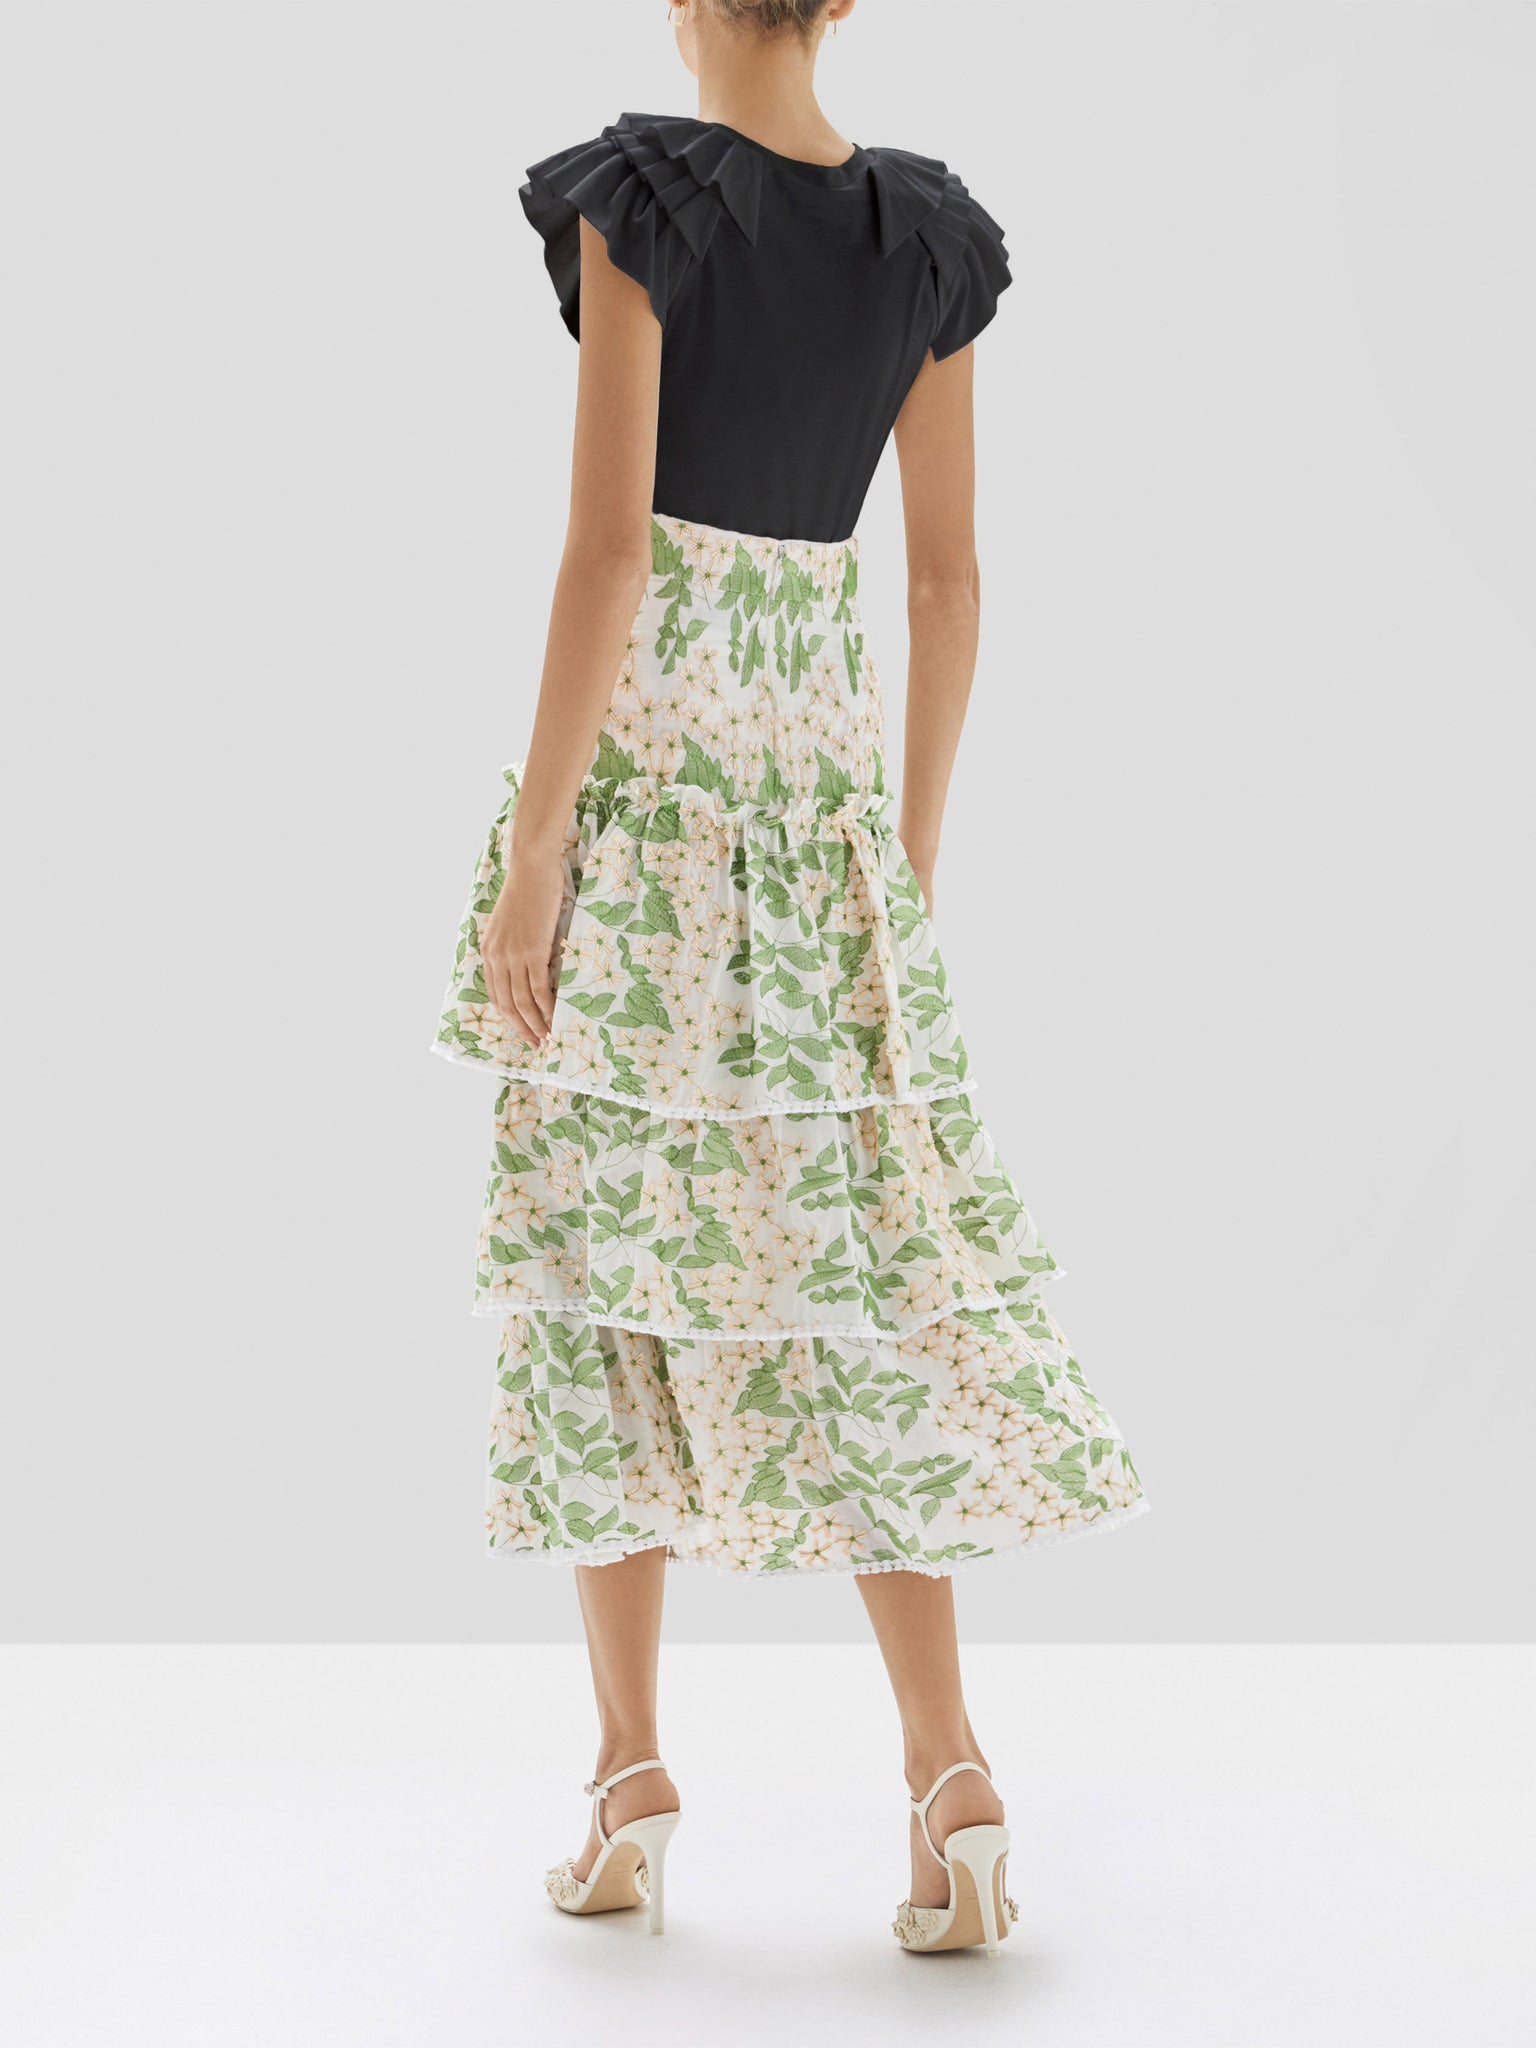 Alexis Cassis Top in Black and Aditya Skirt in Green Embroidery from the Pre Spring 2020 Collection - Rear View